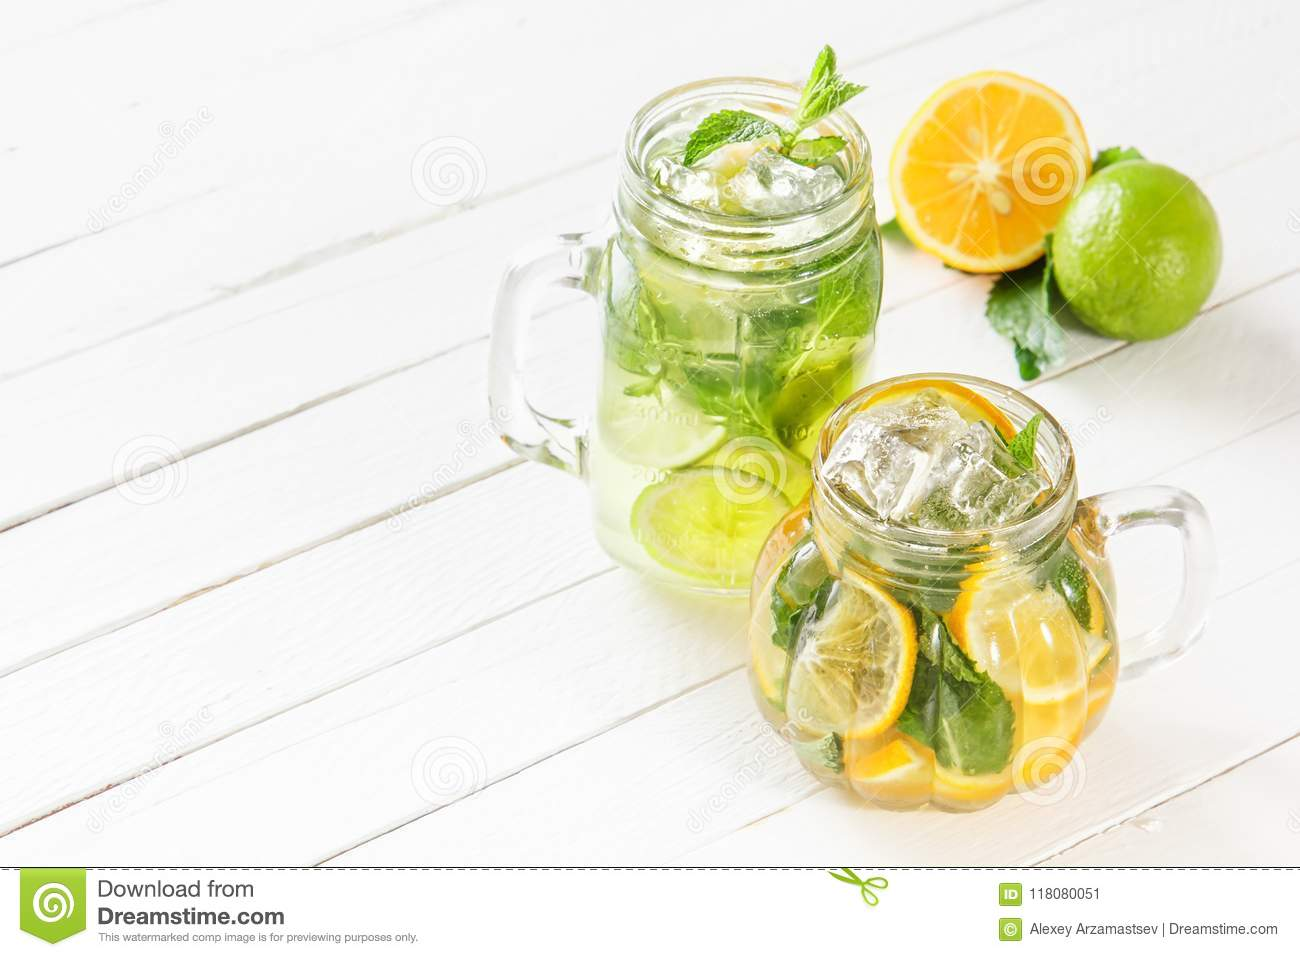 Two glass glasses with homemade lemonade from lime and lemon, sliced citrus on a white wooden rustic background